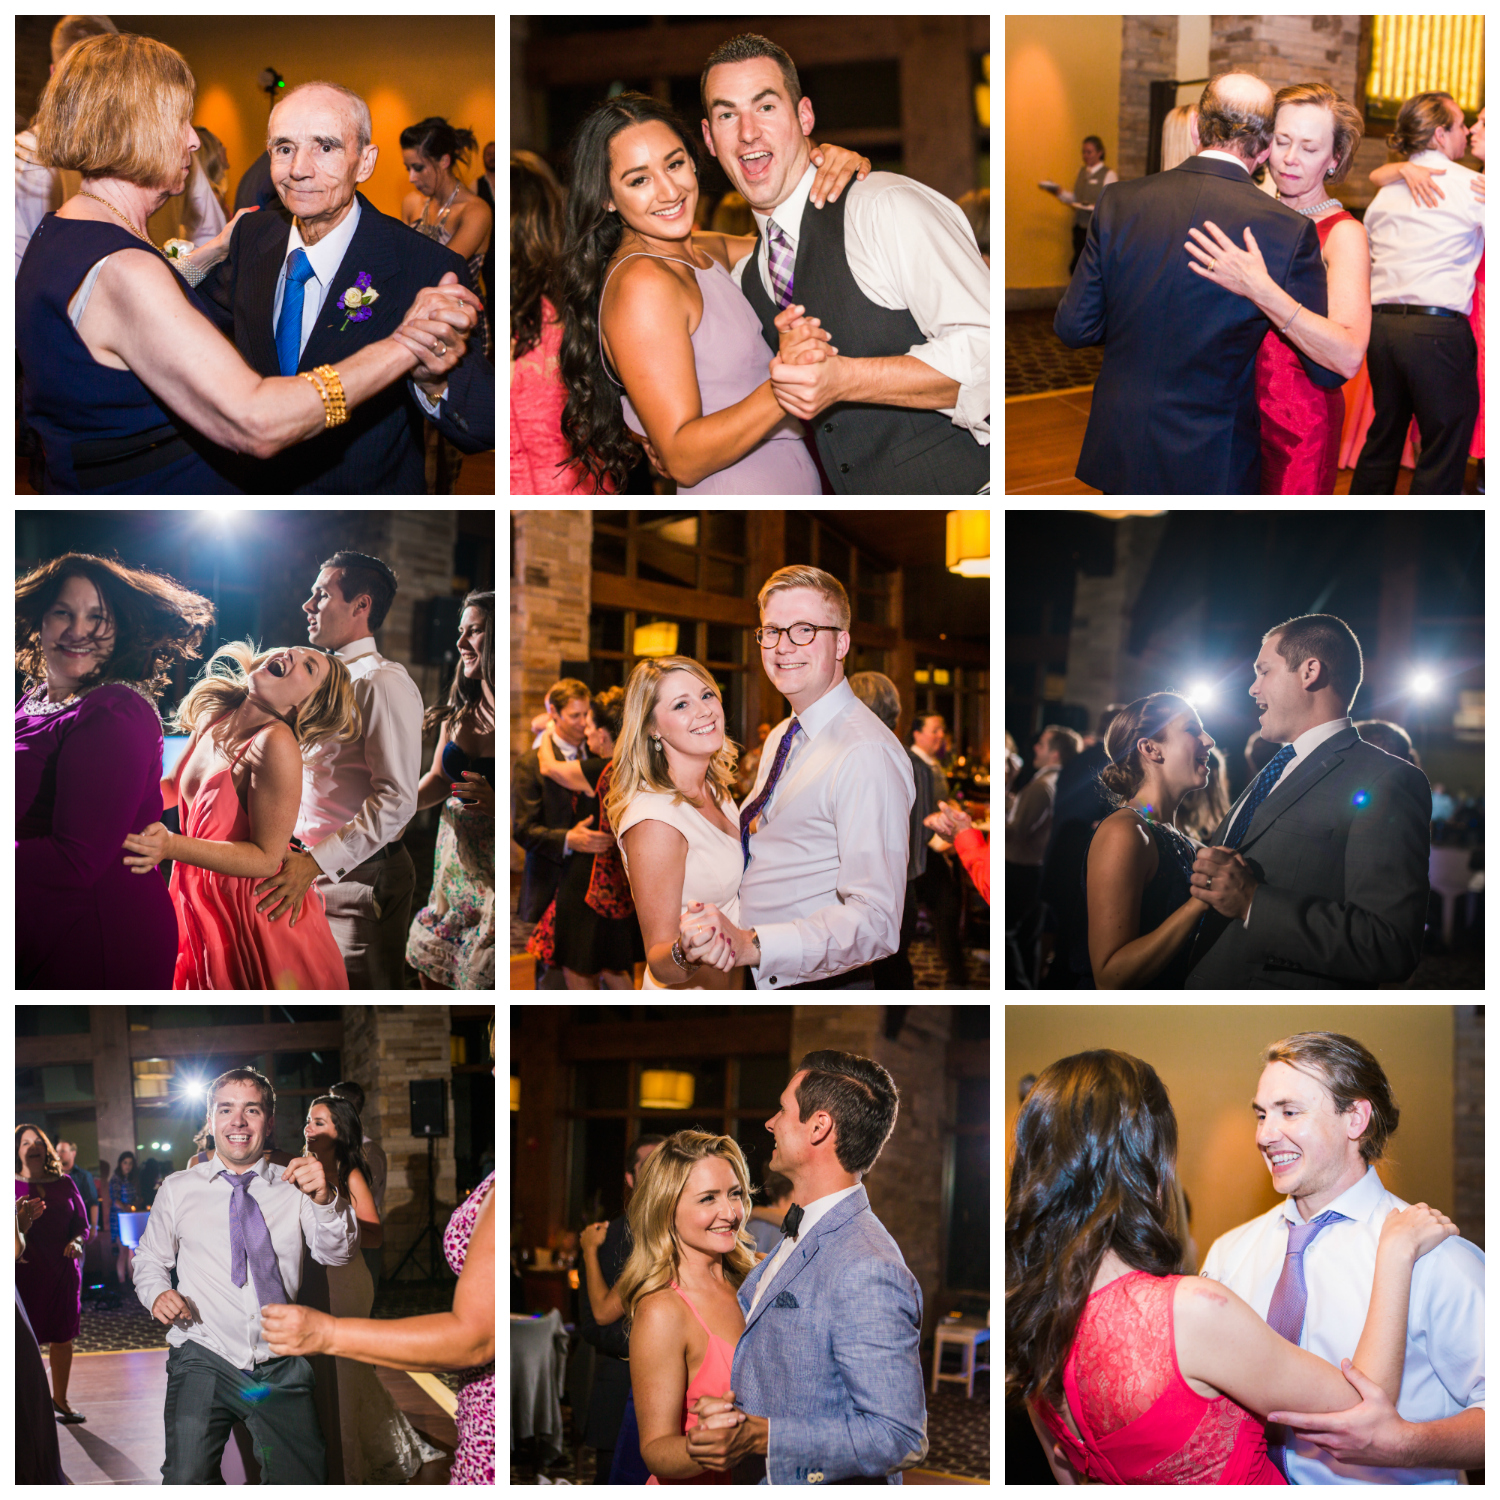 Party time! Vail Colorado Wedding photographed by JMGant Photography.